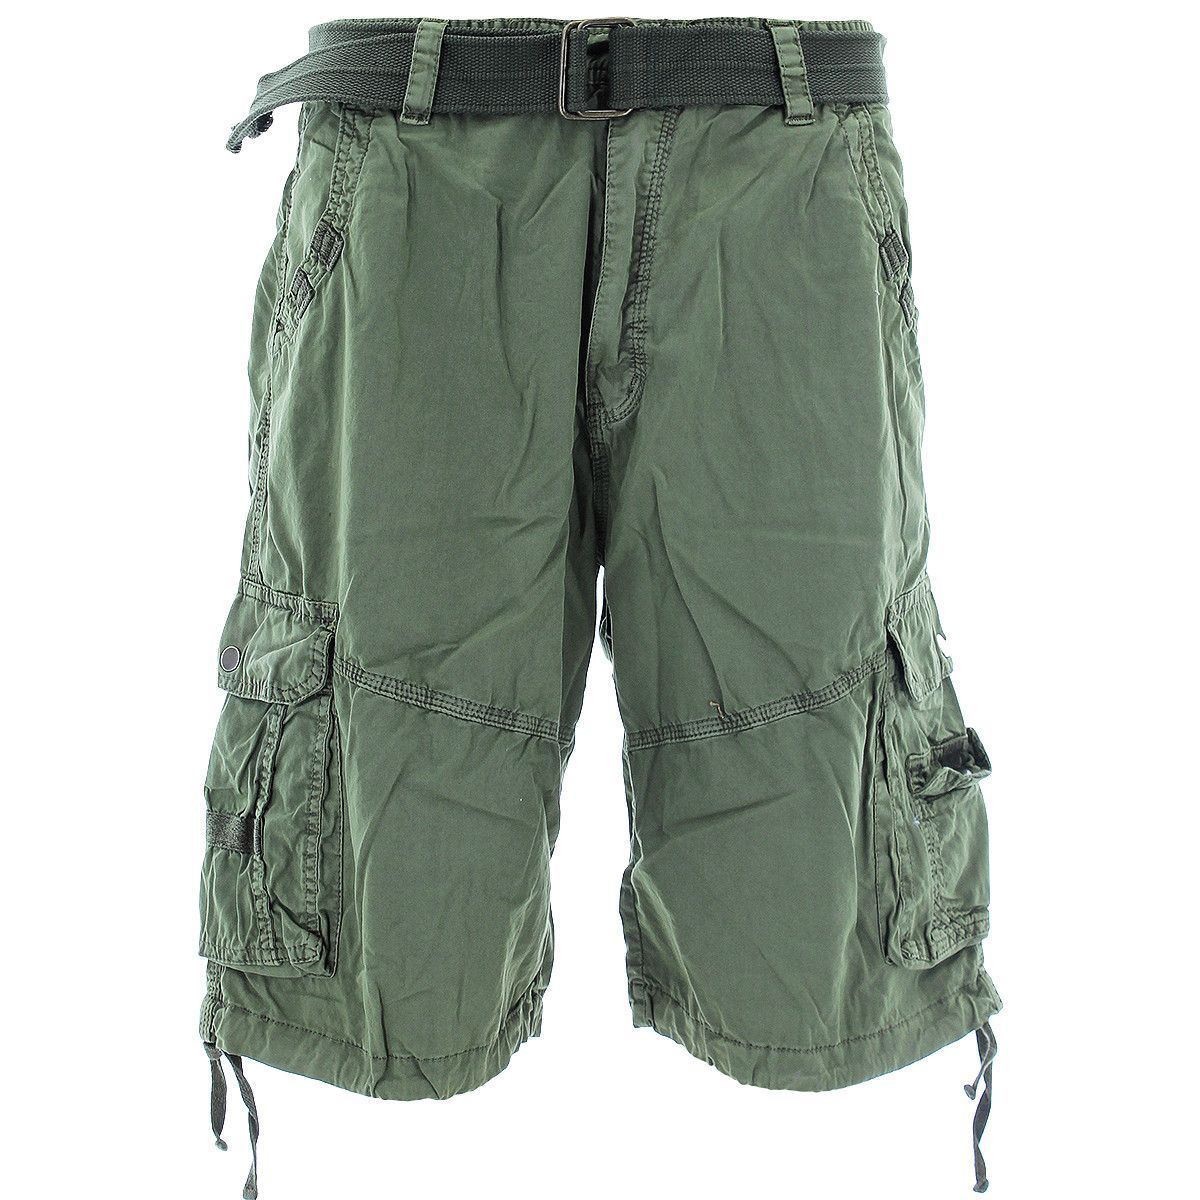 S.A.S.C.O. Trading Inc. - Men's Belted Snap Button Cargo Shorts - Light Olive